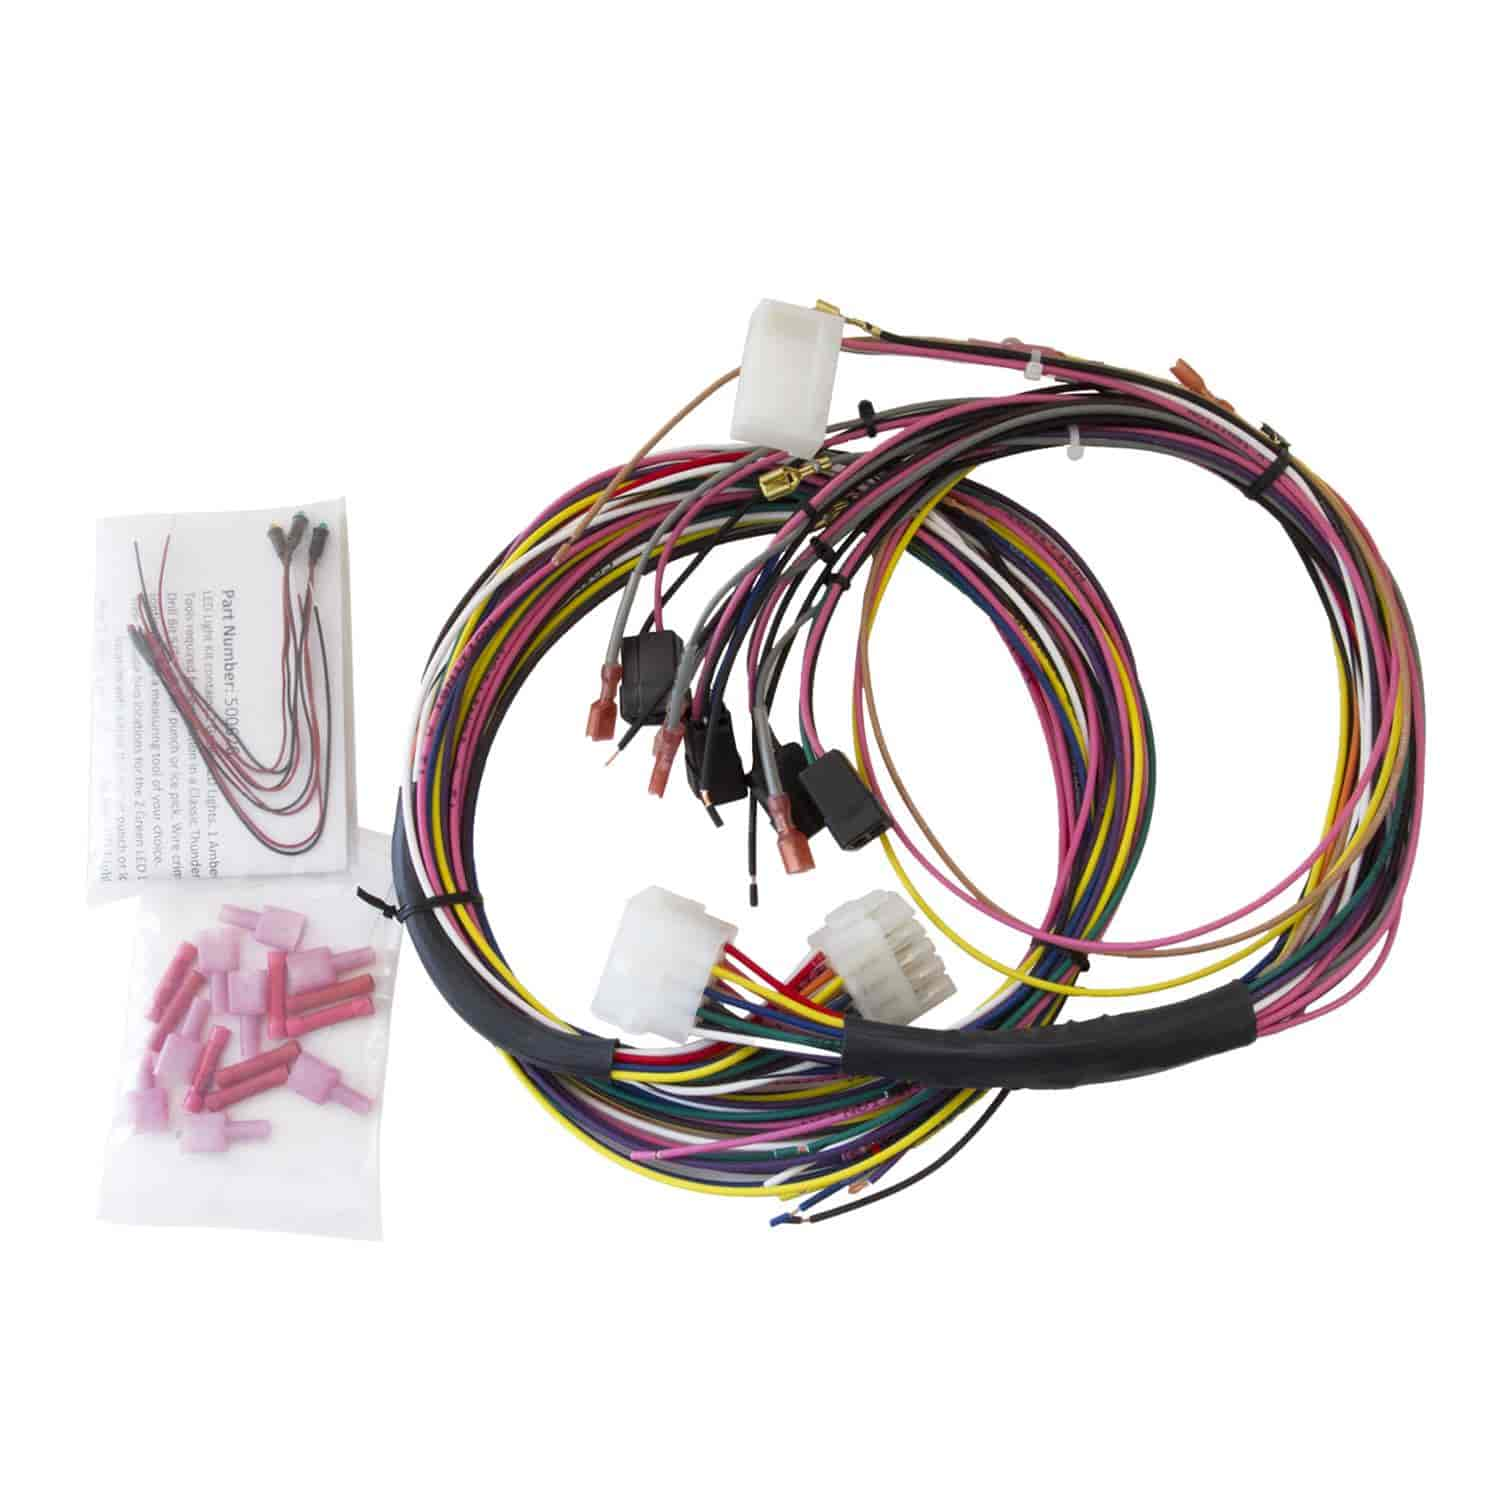 105 2198 auto meter 2198 replacement wiring harness universal jegs VW Wiring Harness Kits at sewacar.co